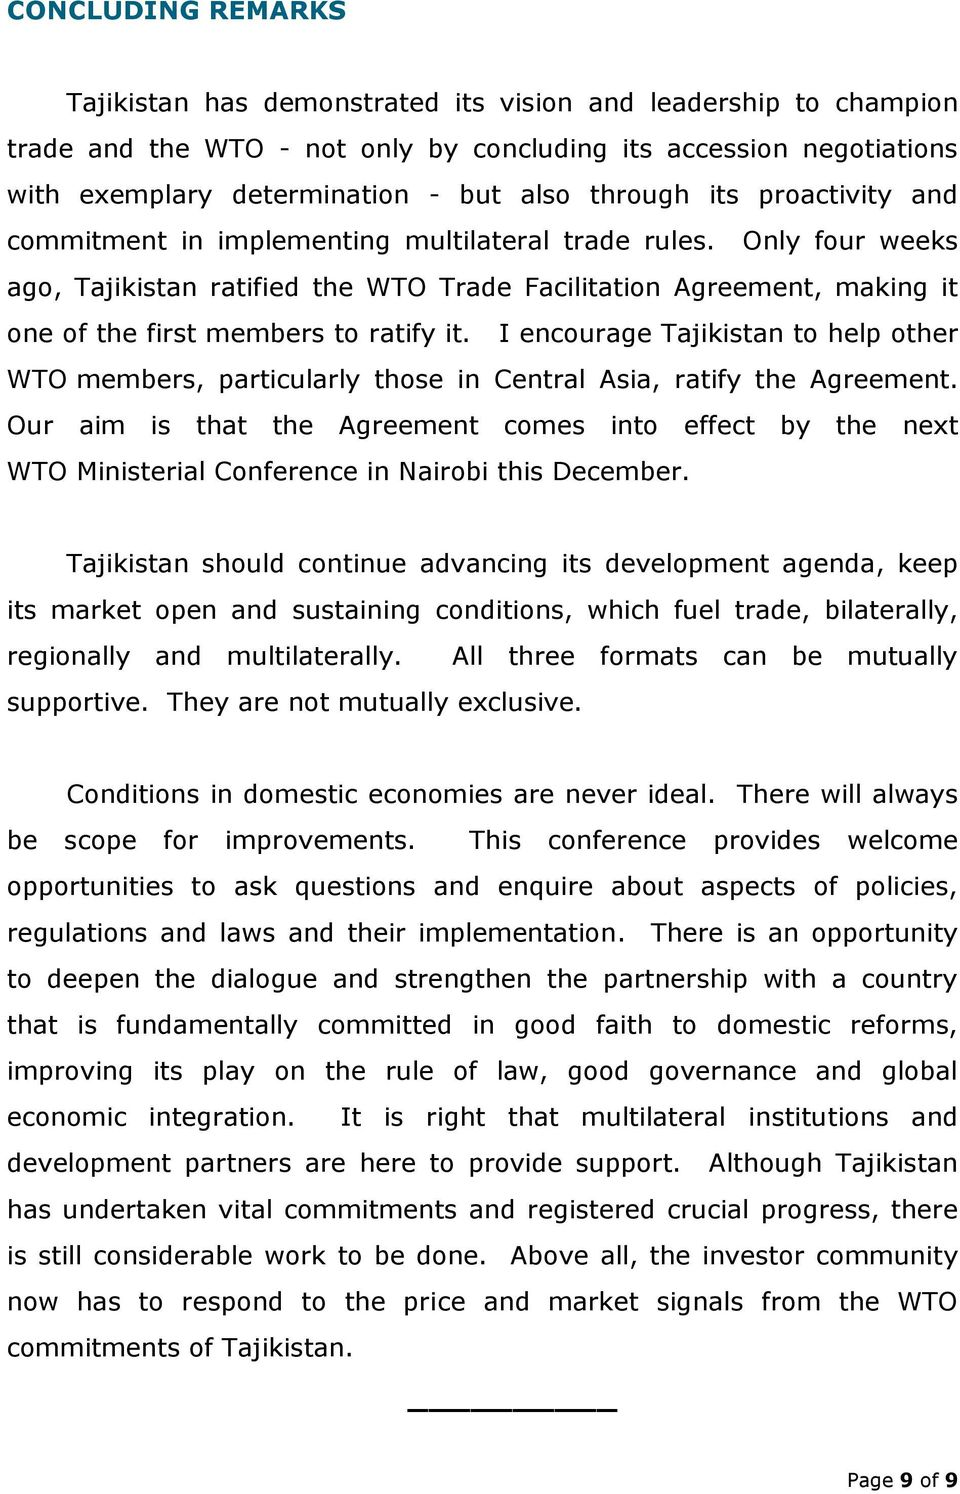 Only four weeks ago, Tajikistan ratified the WTO Trade Facilitation Agreement, making it one of the first members to ratify it.